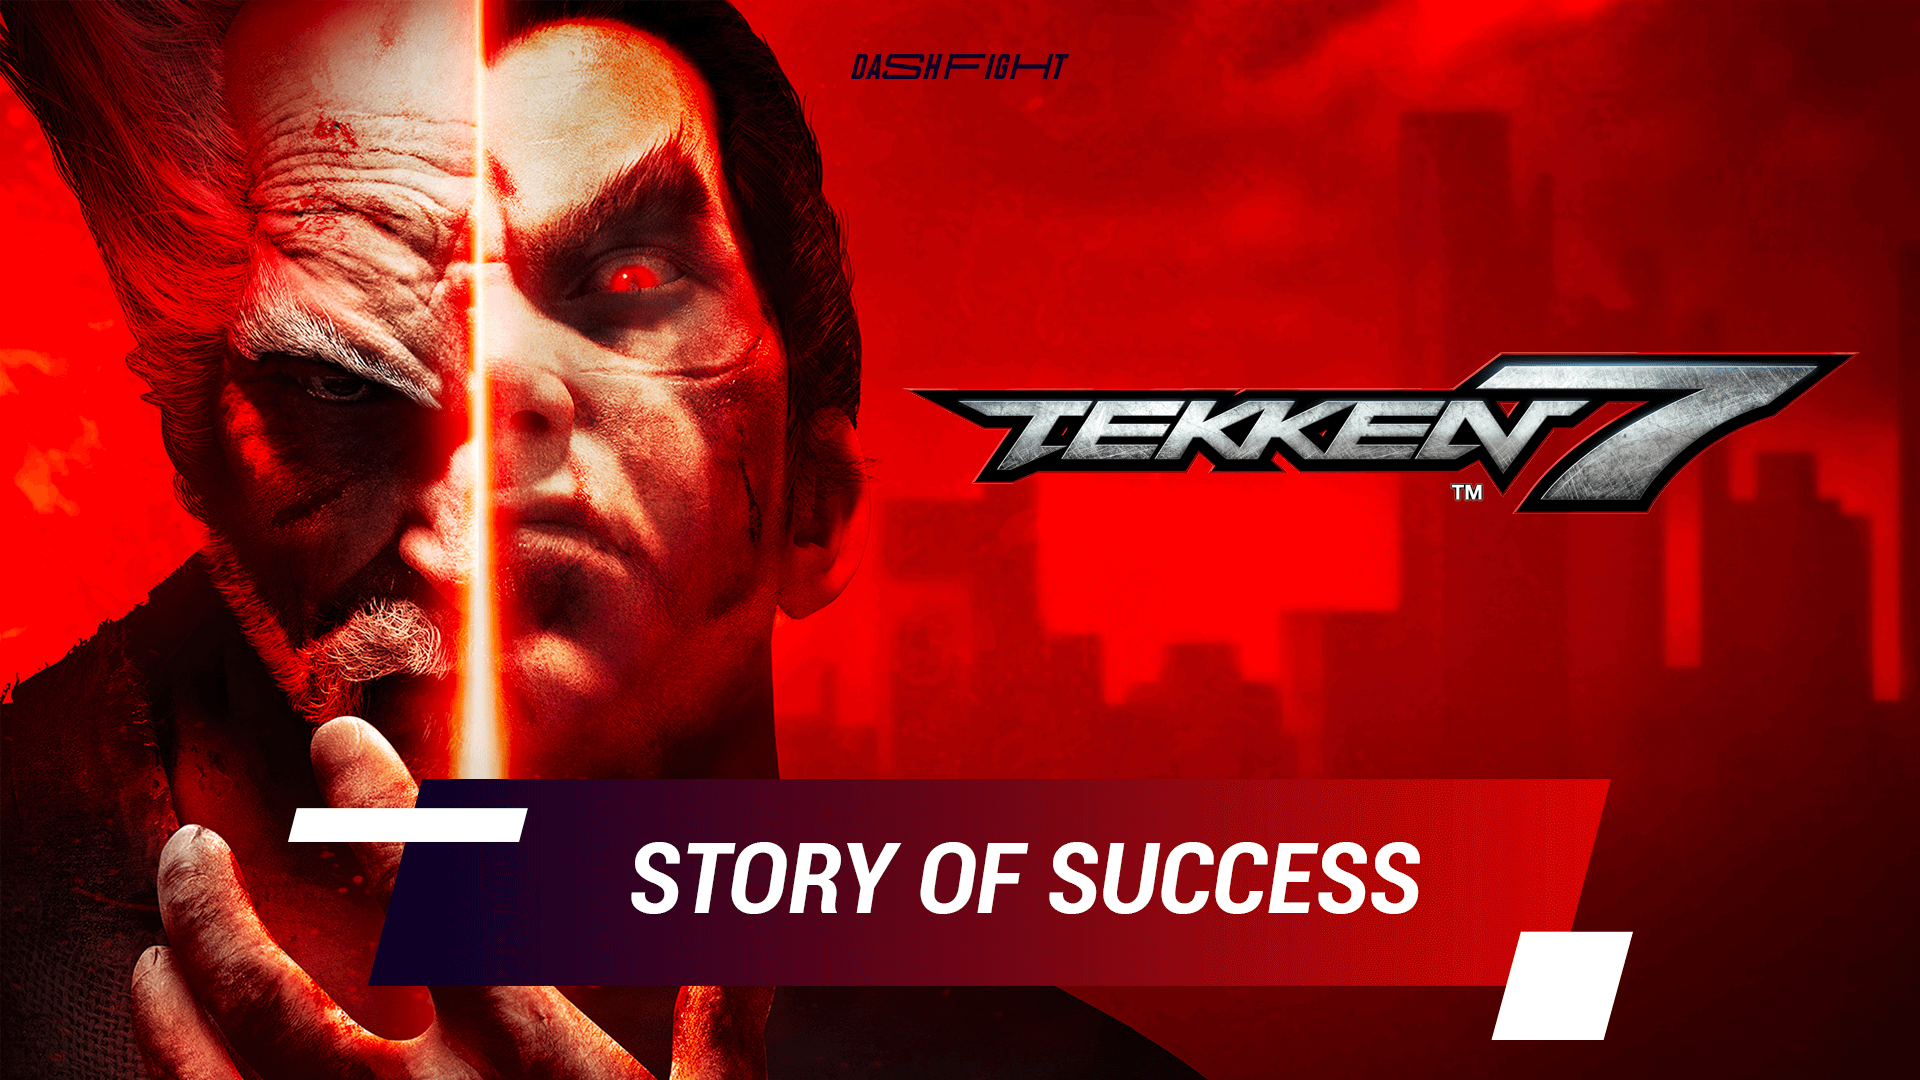 A Story of Success: How Tekken Burst into the Industry